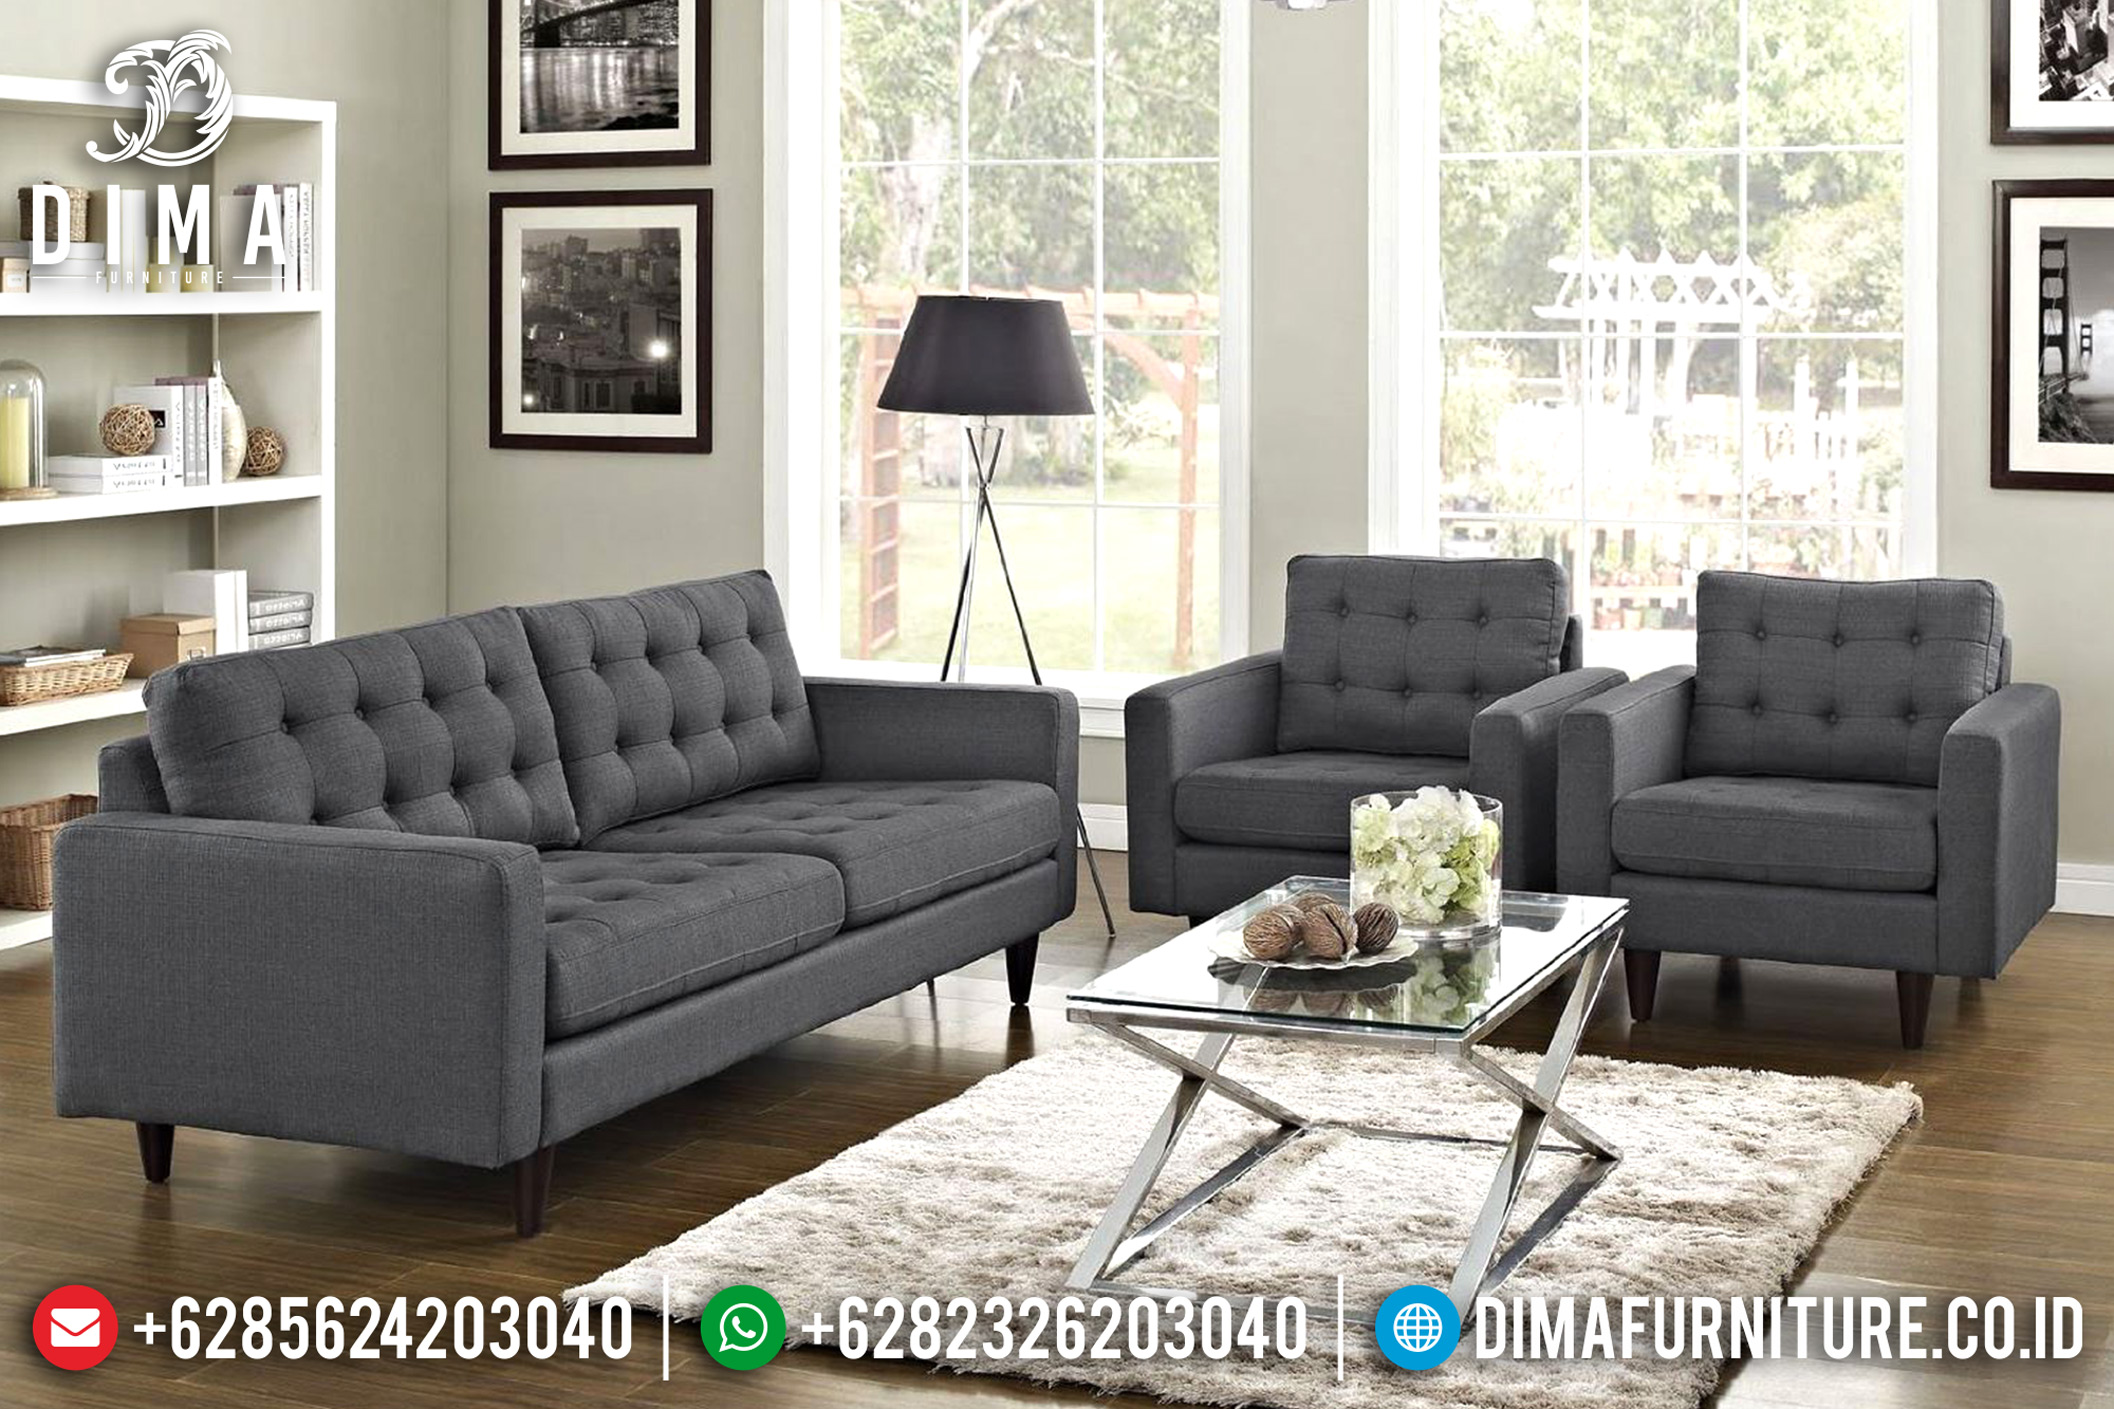 Indonesian Furniture Sale Kursi Sofa Tamu Minimalis Modern Mewah Lexmod ST-0630